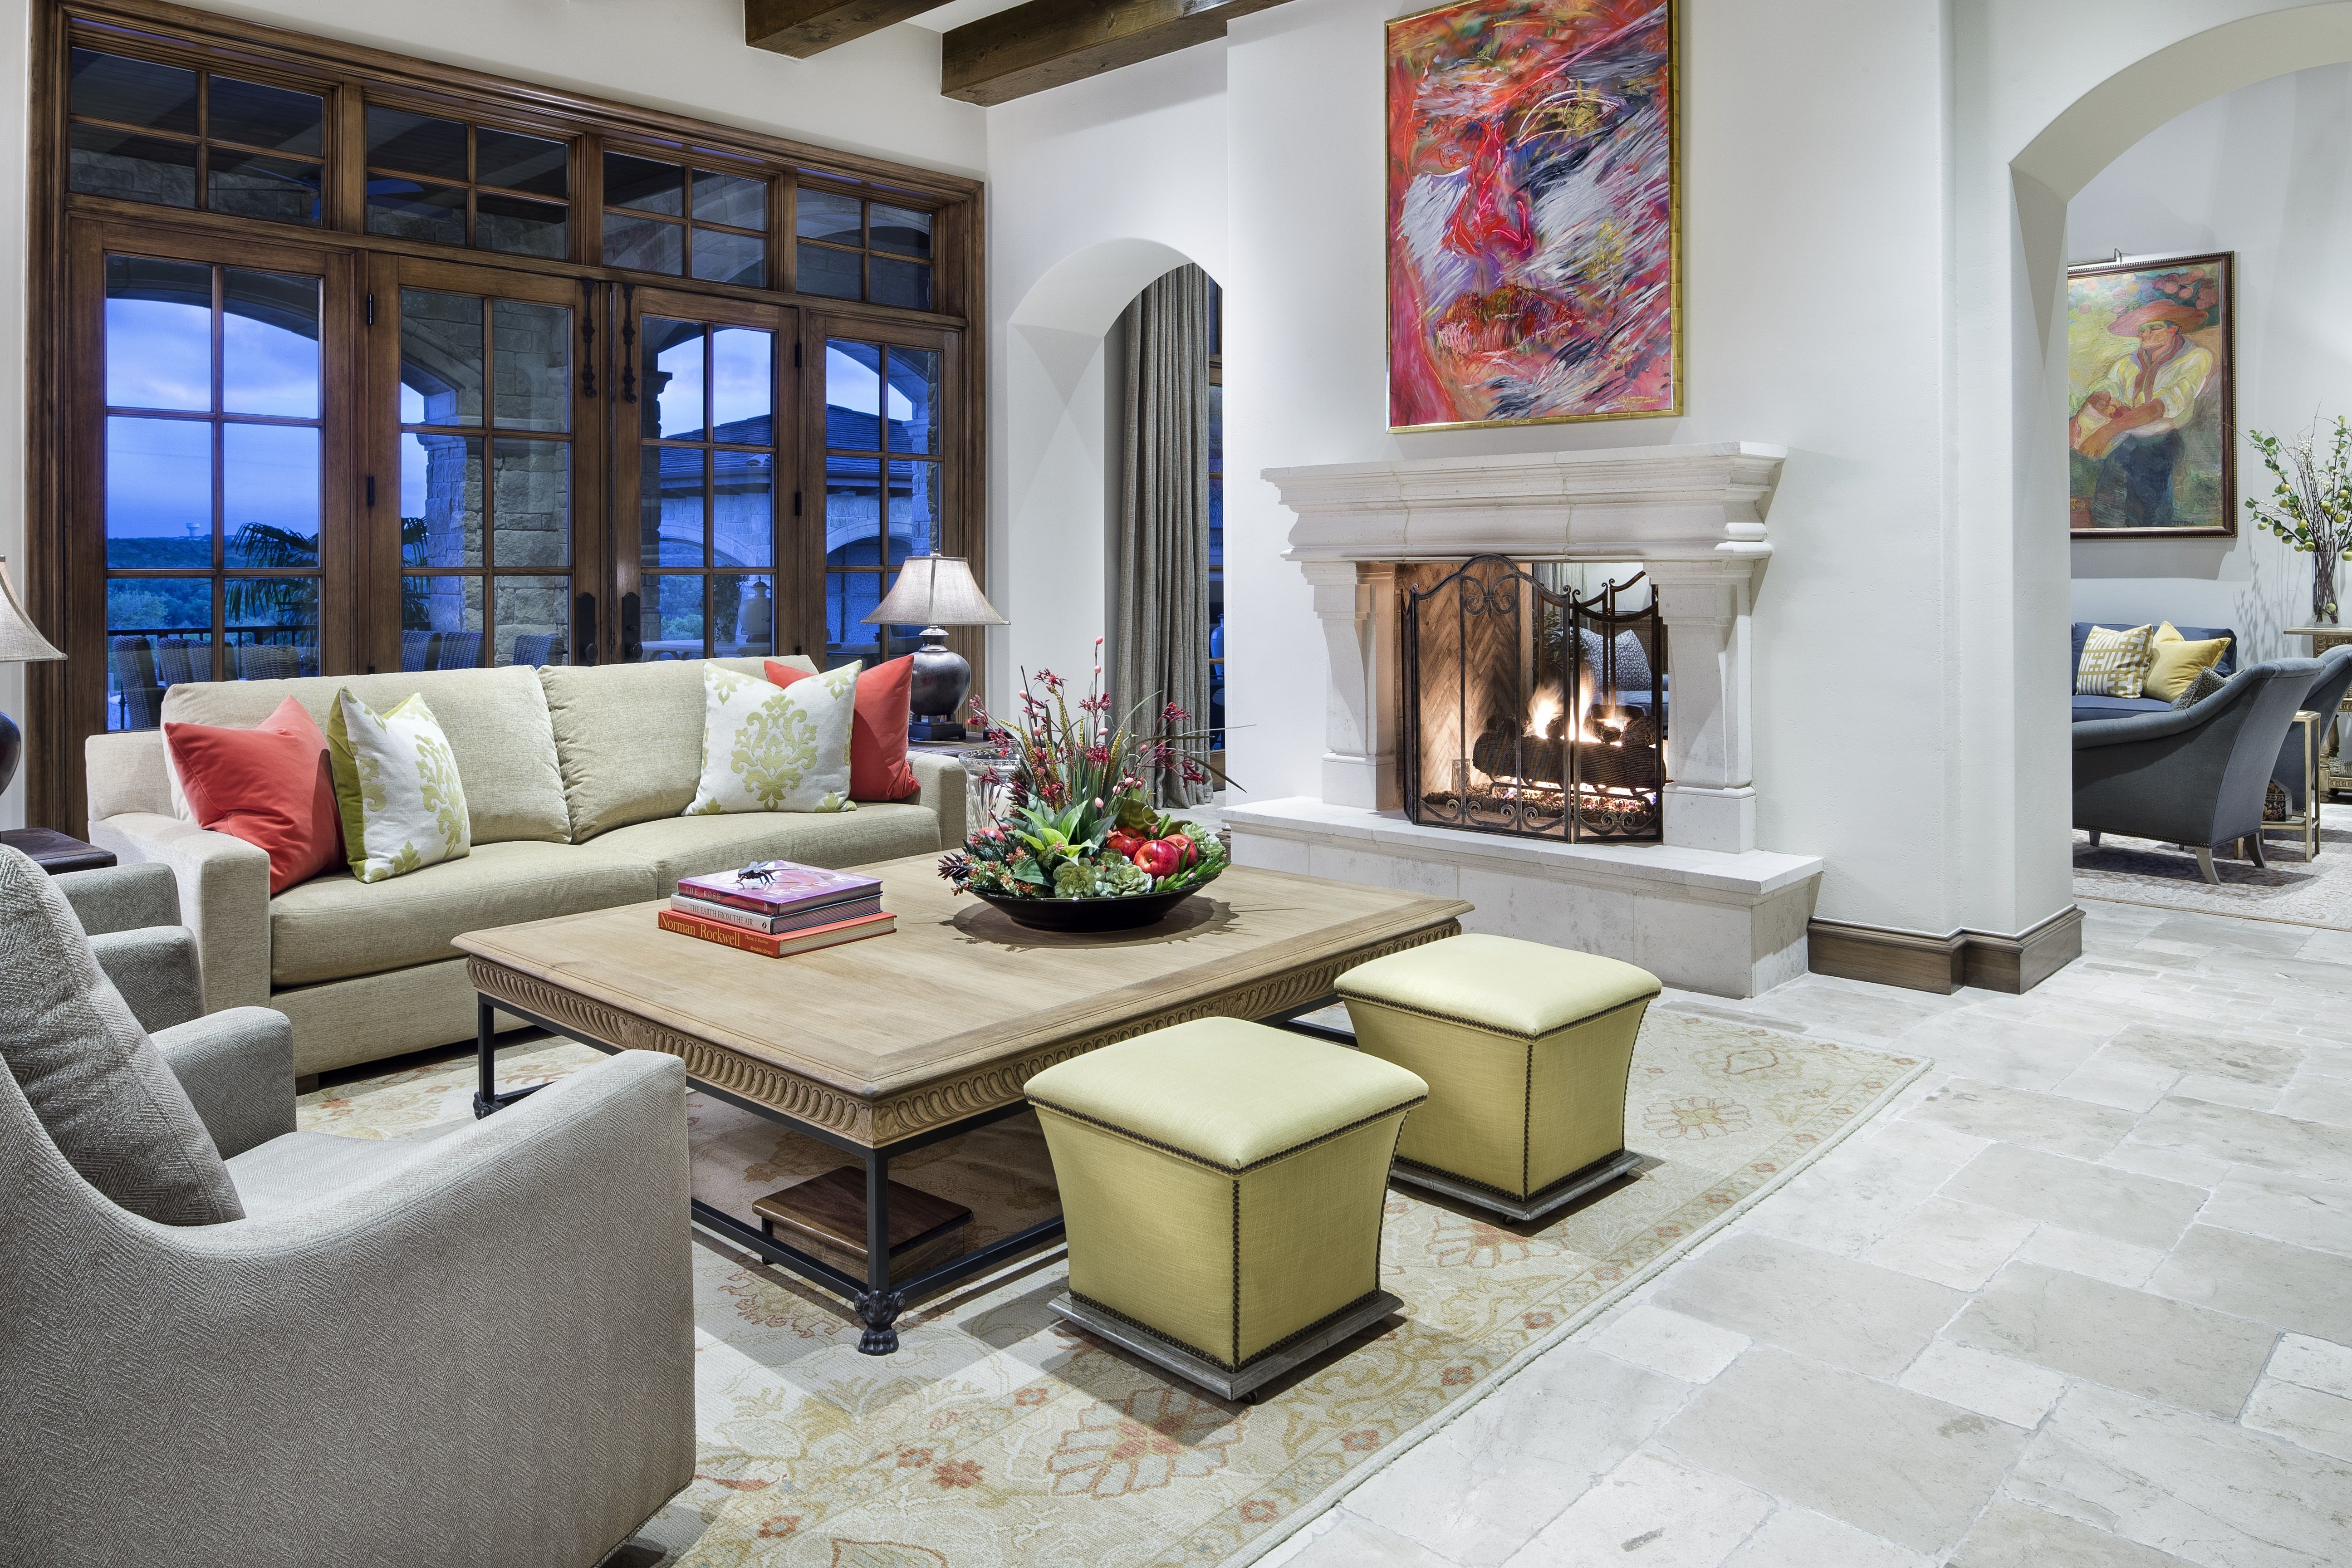 Discussion on this topic: Elegance in Texas at the Southlake Residence , elegance-in-texas-at-the-southlake-residence/